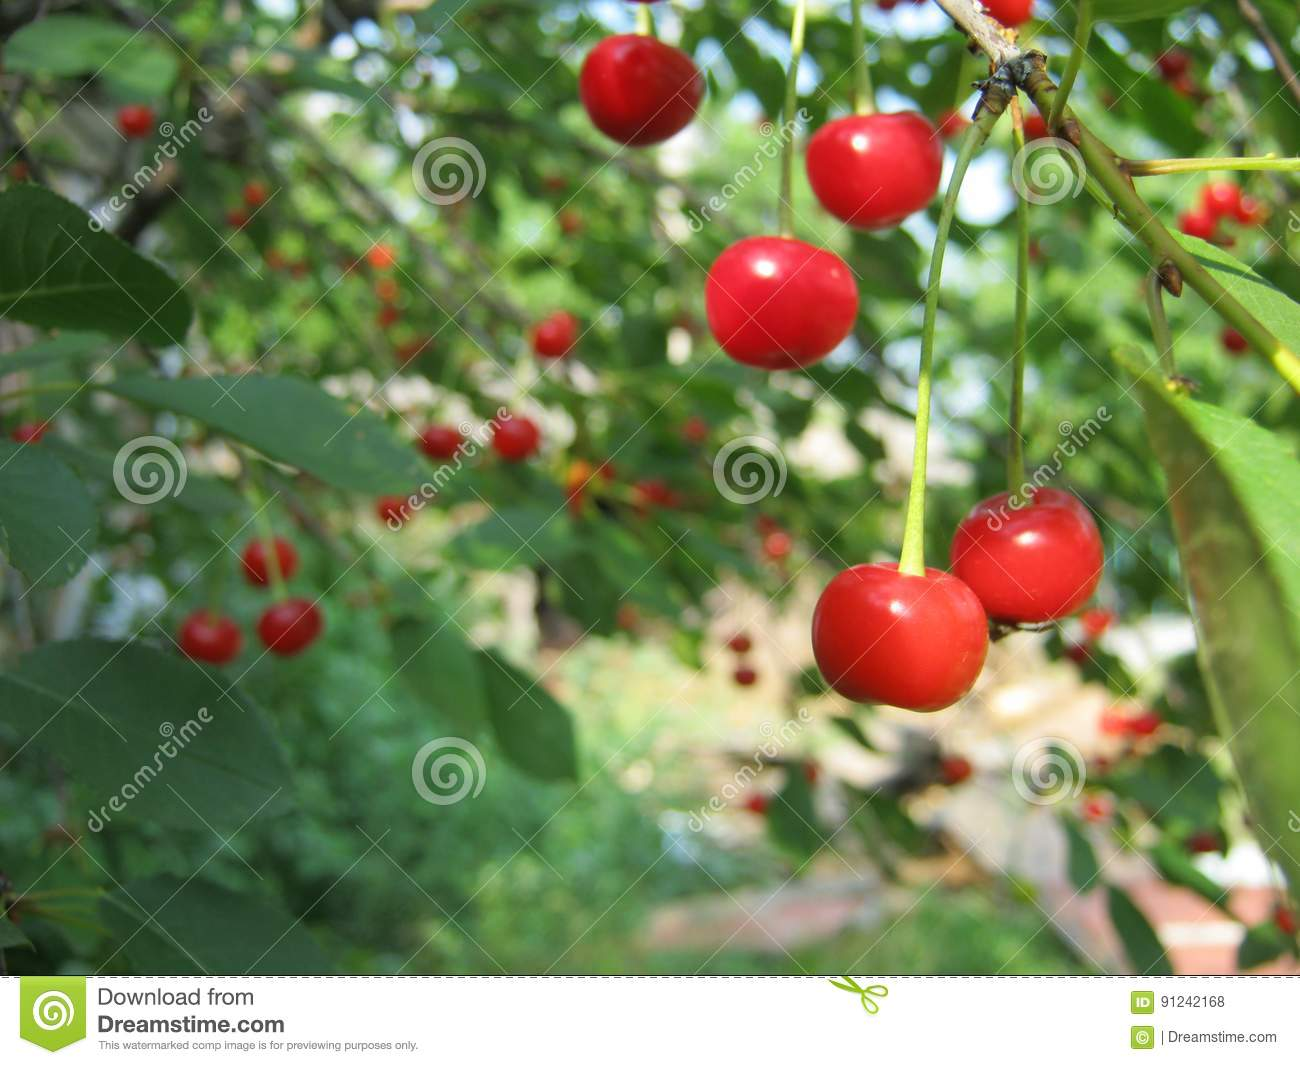 Sour cherry stock photo  Image of differences, nutritional